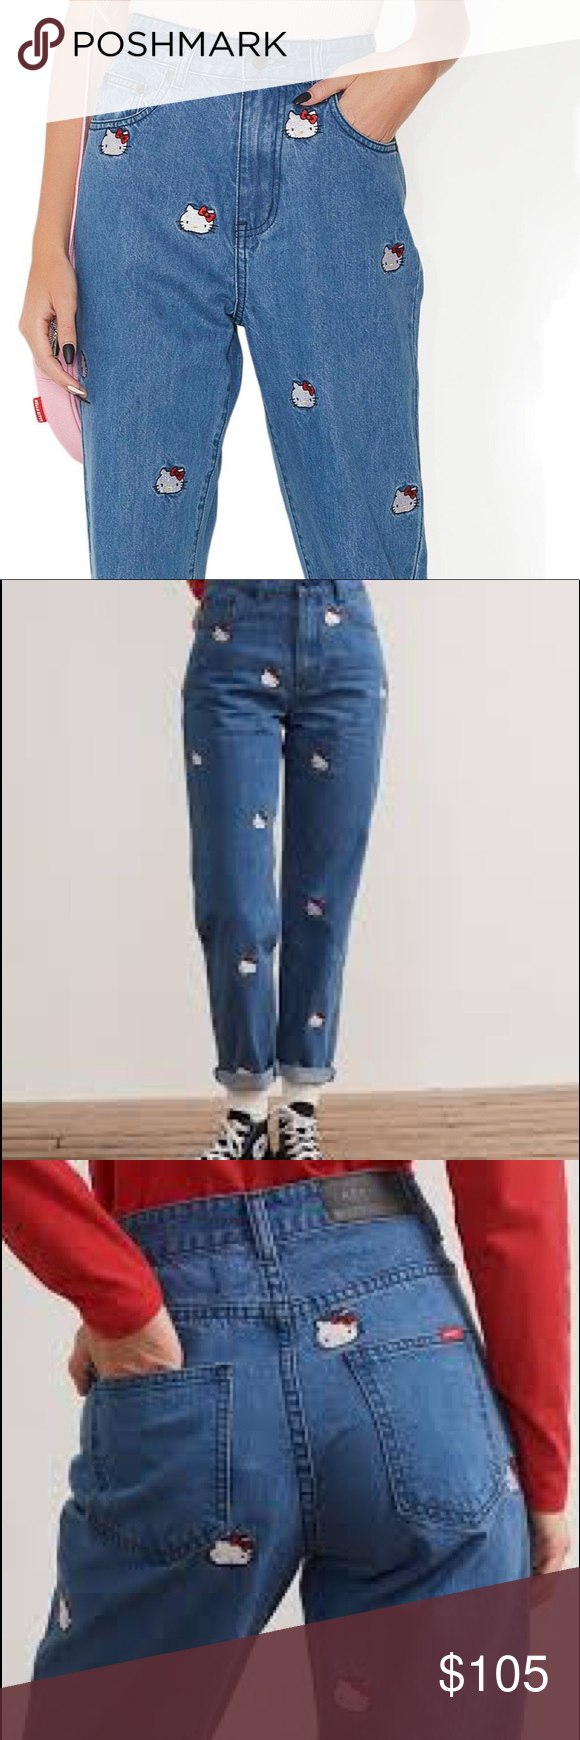 6eb7f4fc2 Lazy Oaf Hello Kitty Emb Jeans Brand new never been been worn . Super  adorable. The price is firm! Lazy Oaf Pants